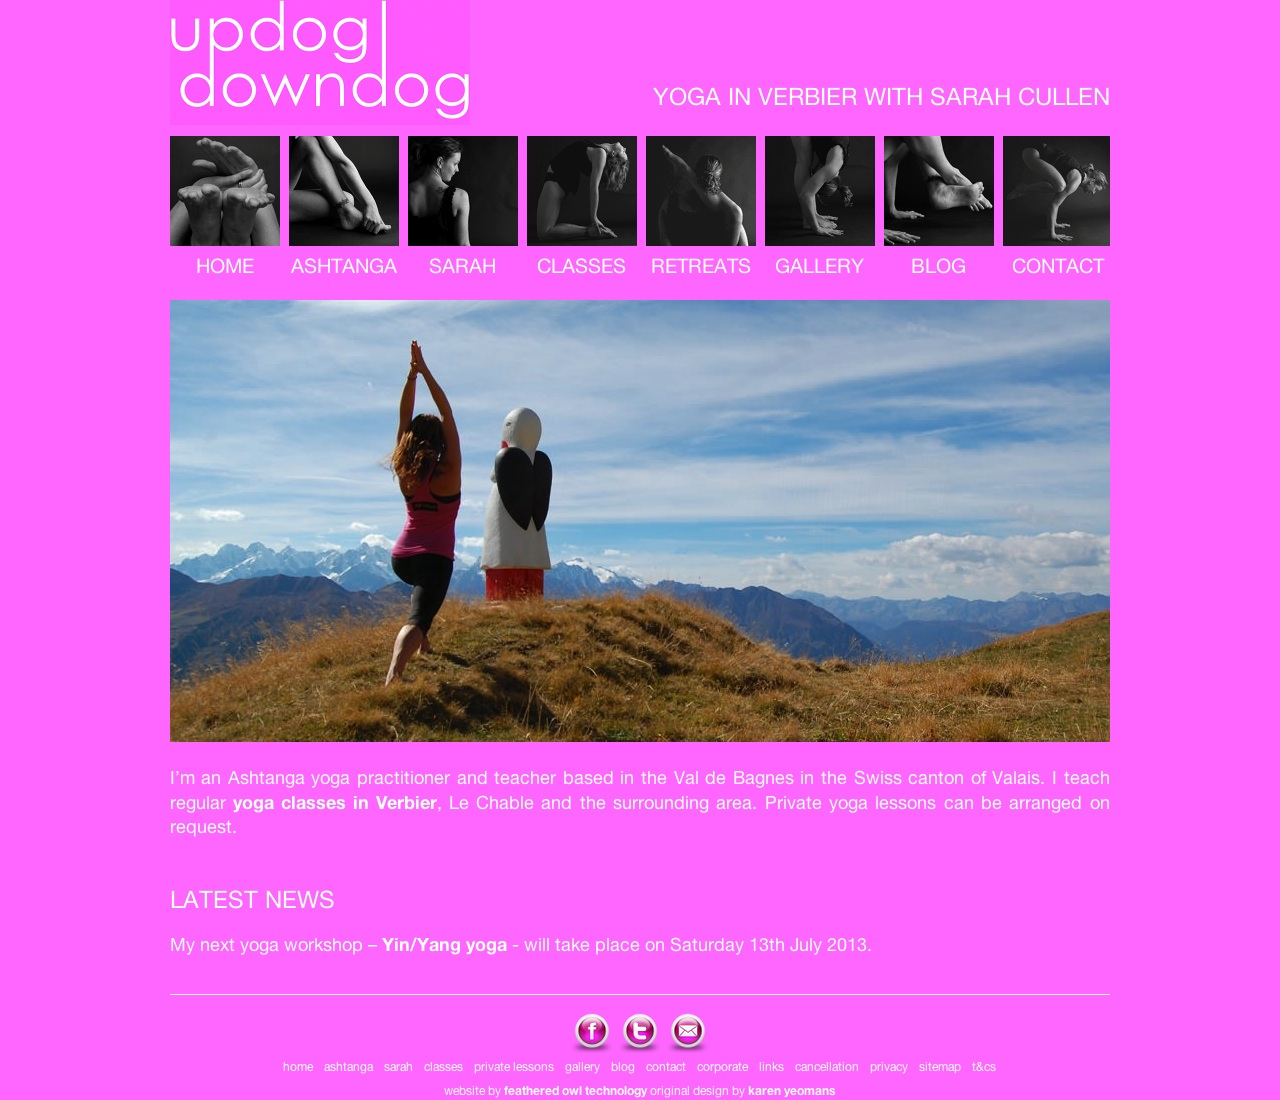 Yoga in Verbier with Sarah Cullen